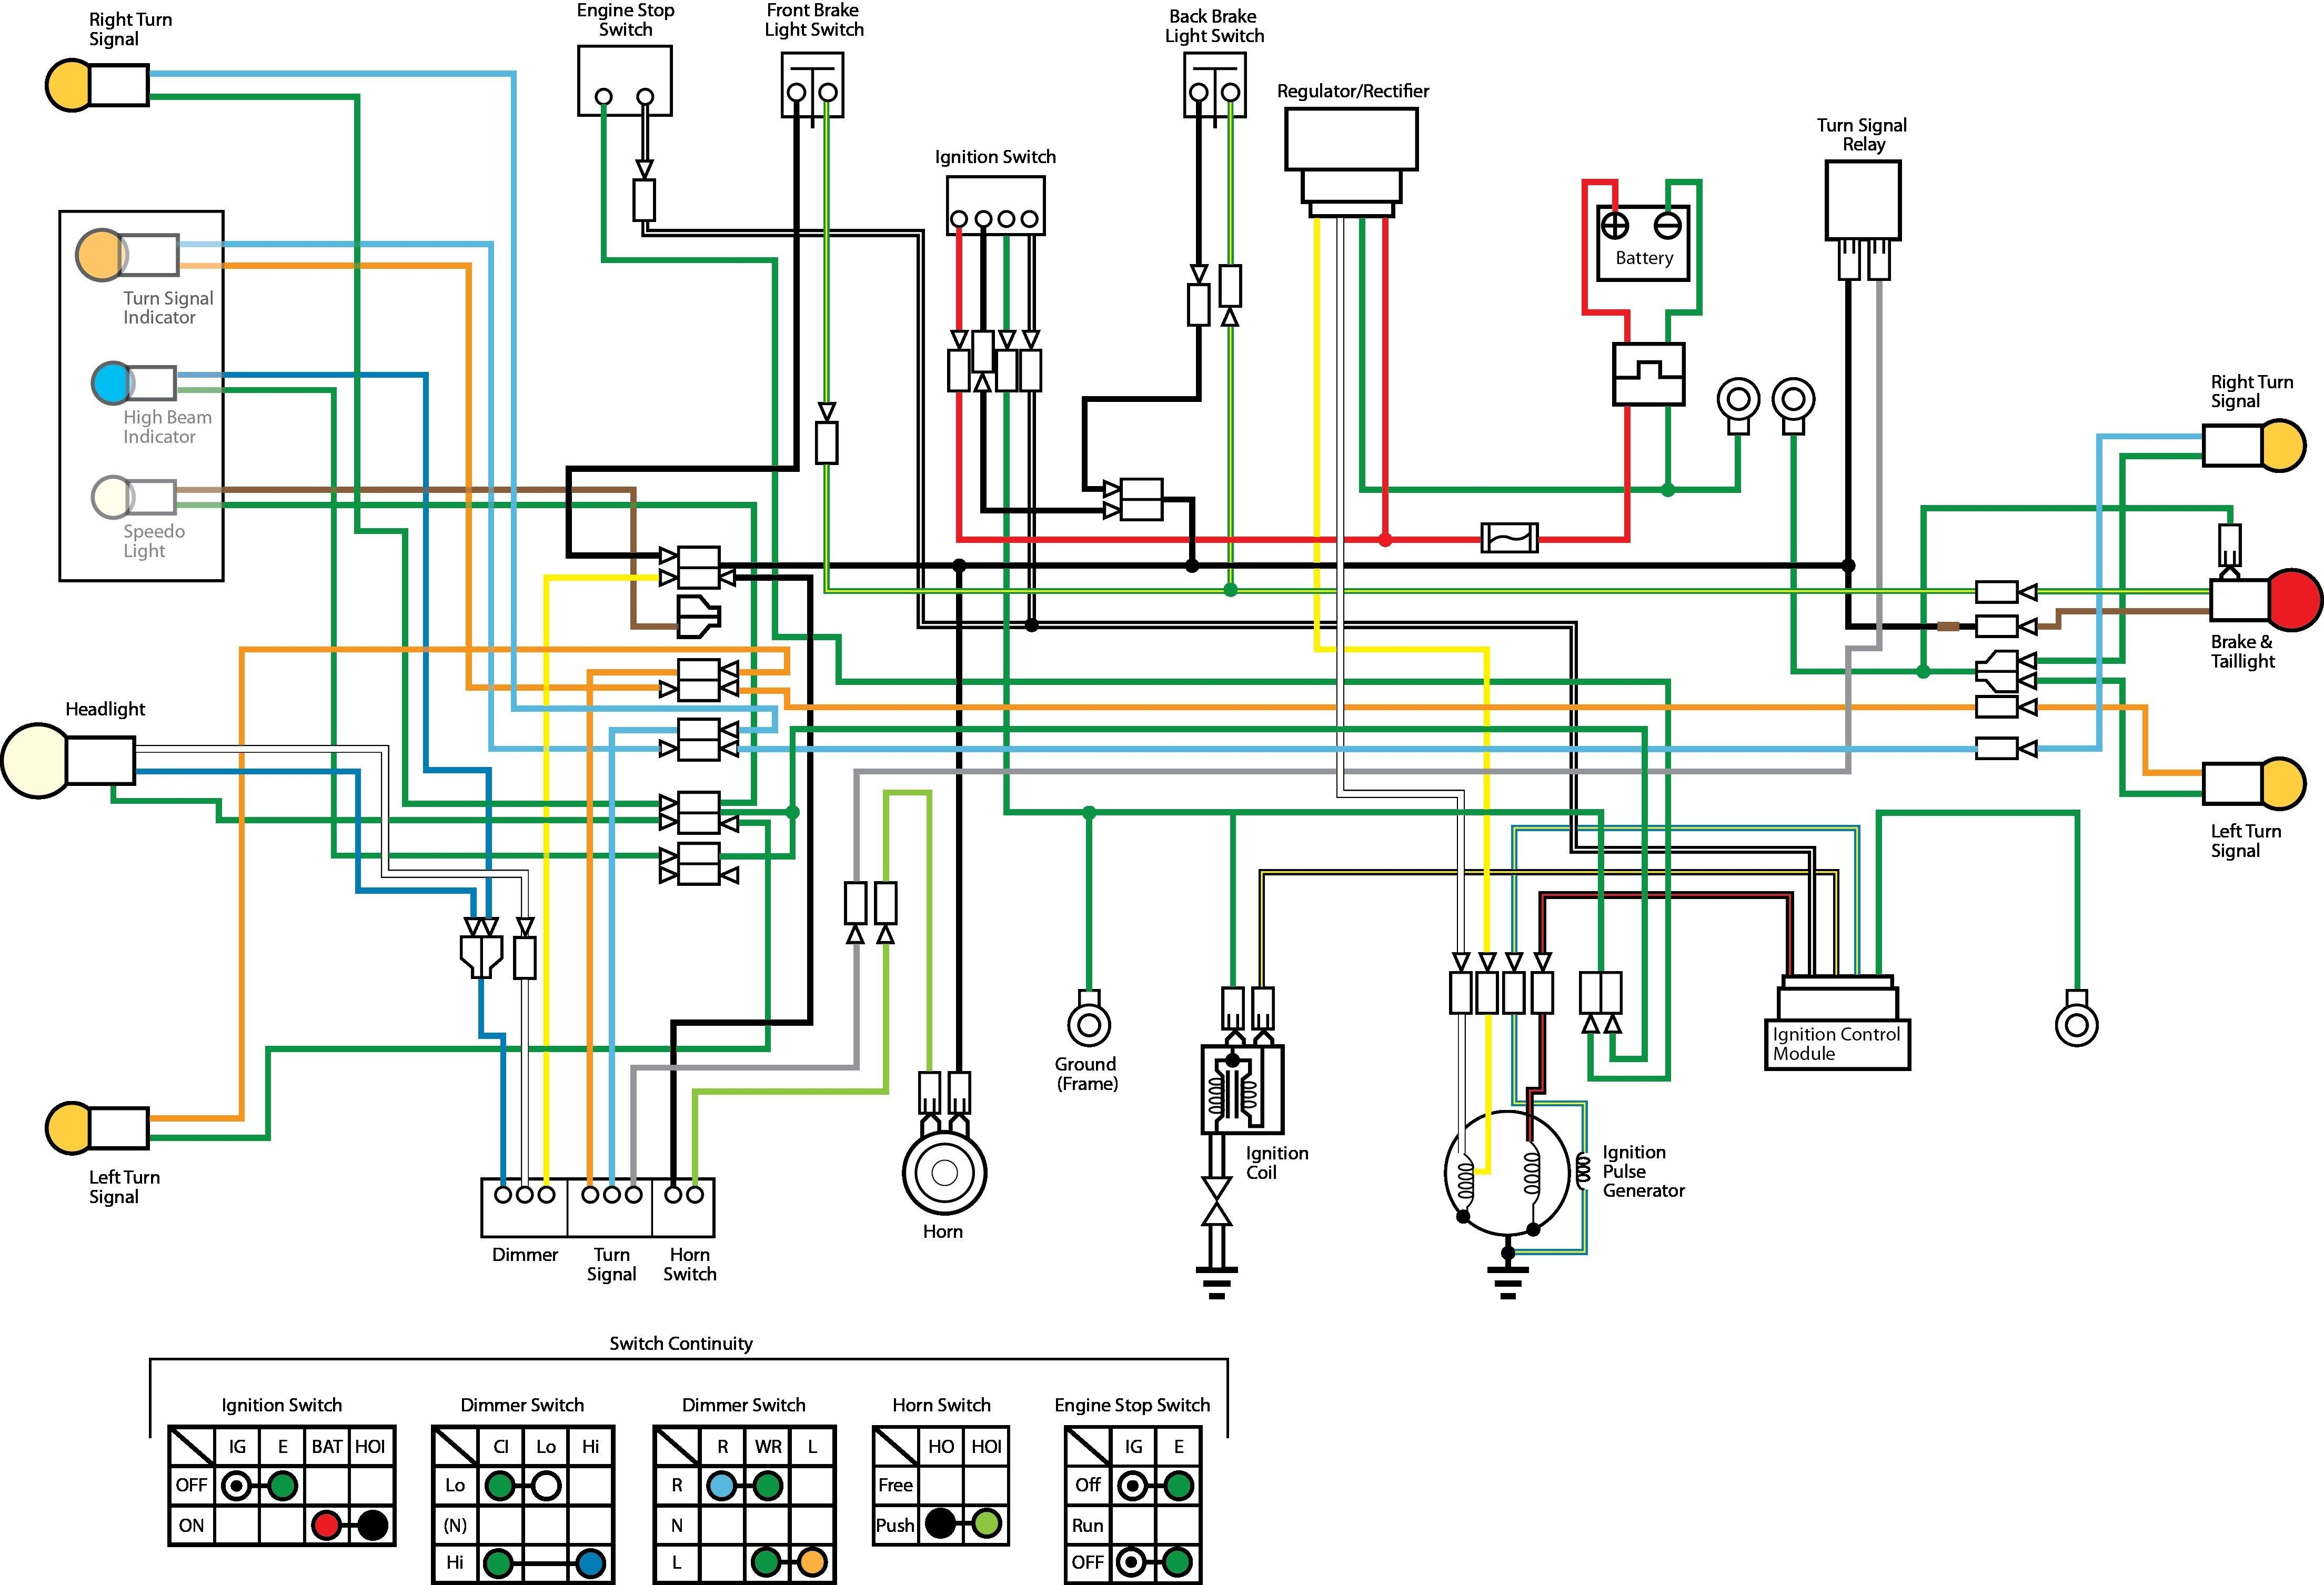 Car Wiring Diagram Awesome In 2020 Motorcycle Wiring Motorcycle Design Electrical Wiring Diagram